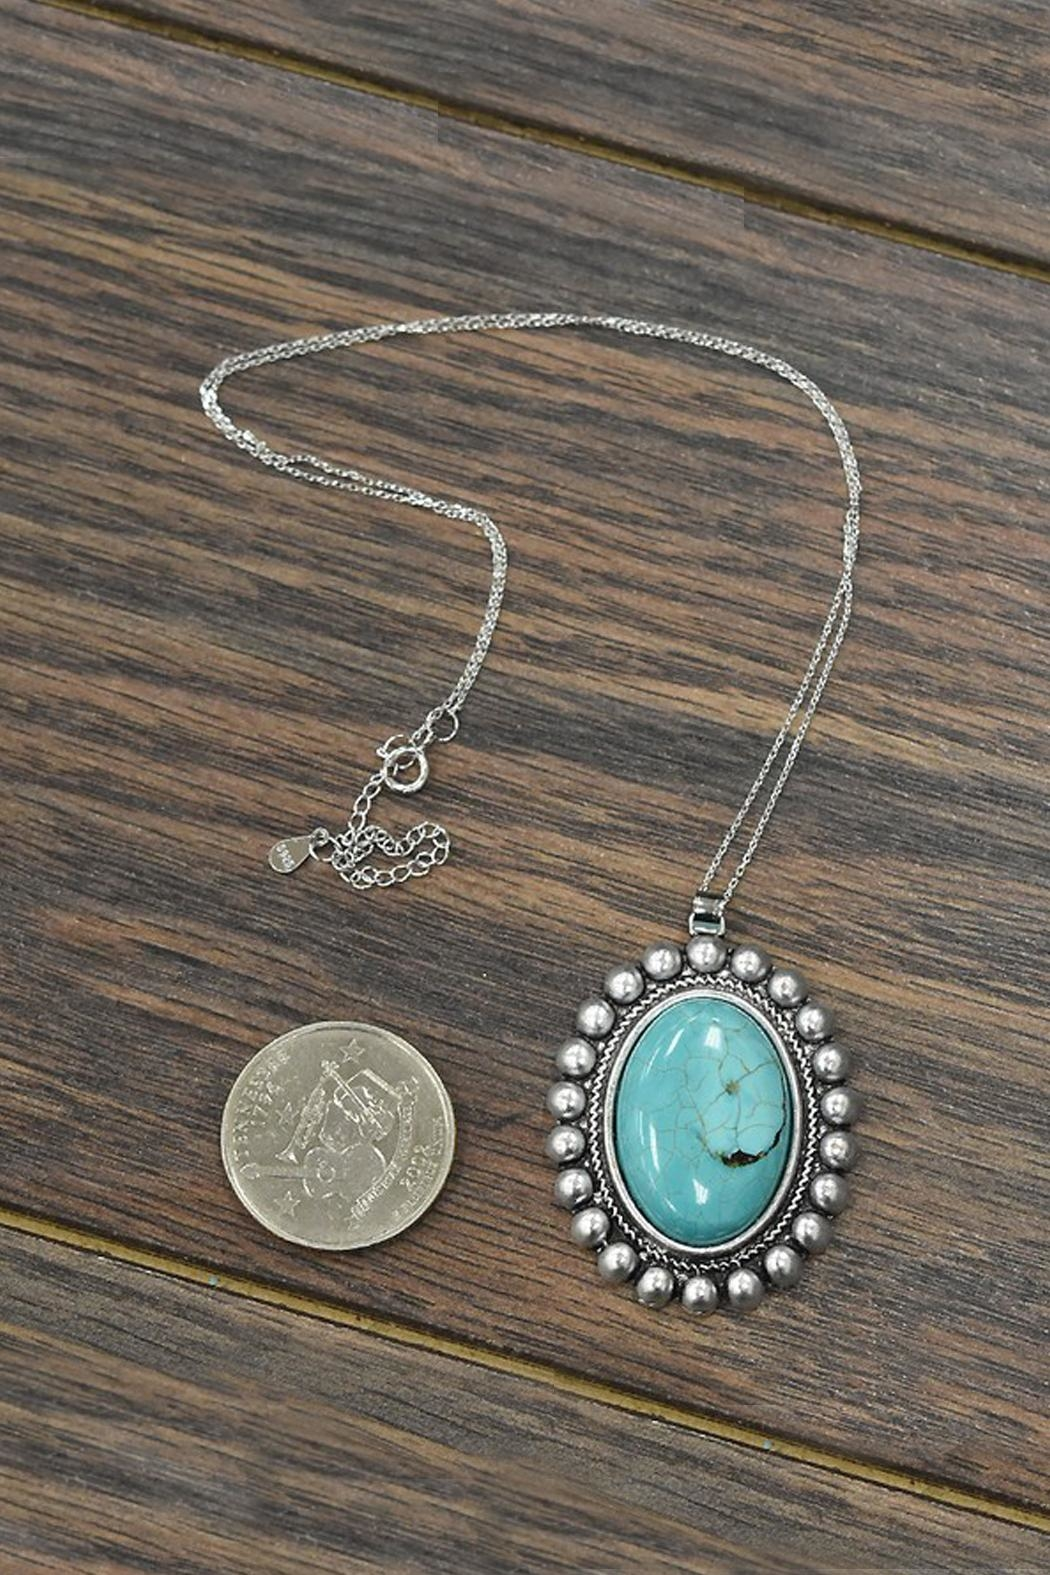 JChronicles Natural-Turquoise-Stone With Sterling-Silver-Chain-Necklace - Front Full Image